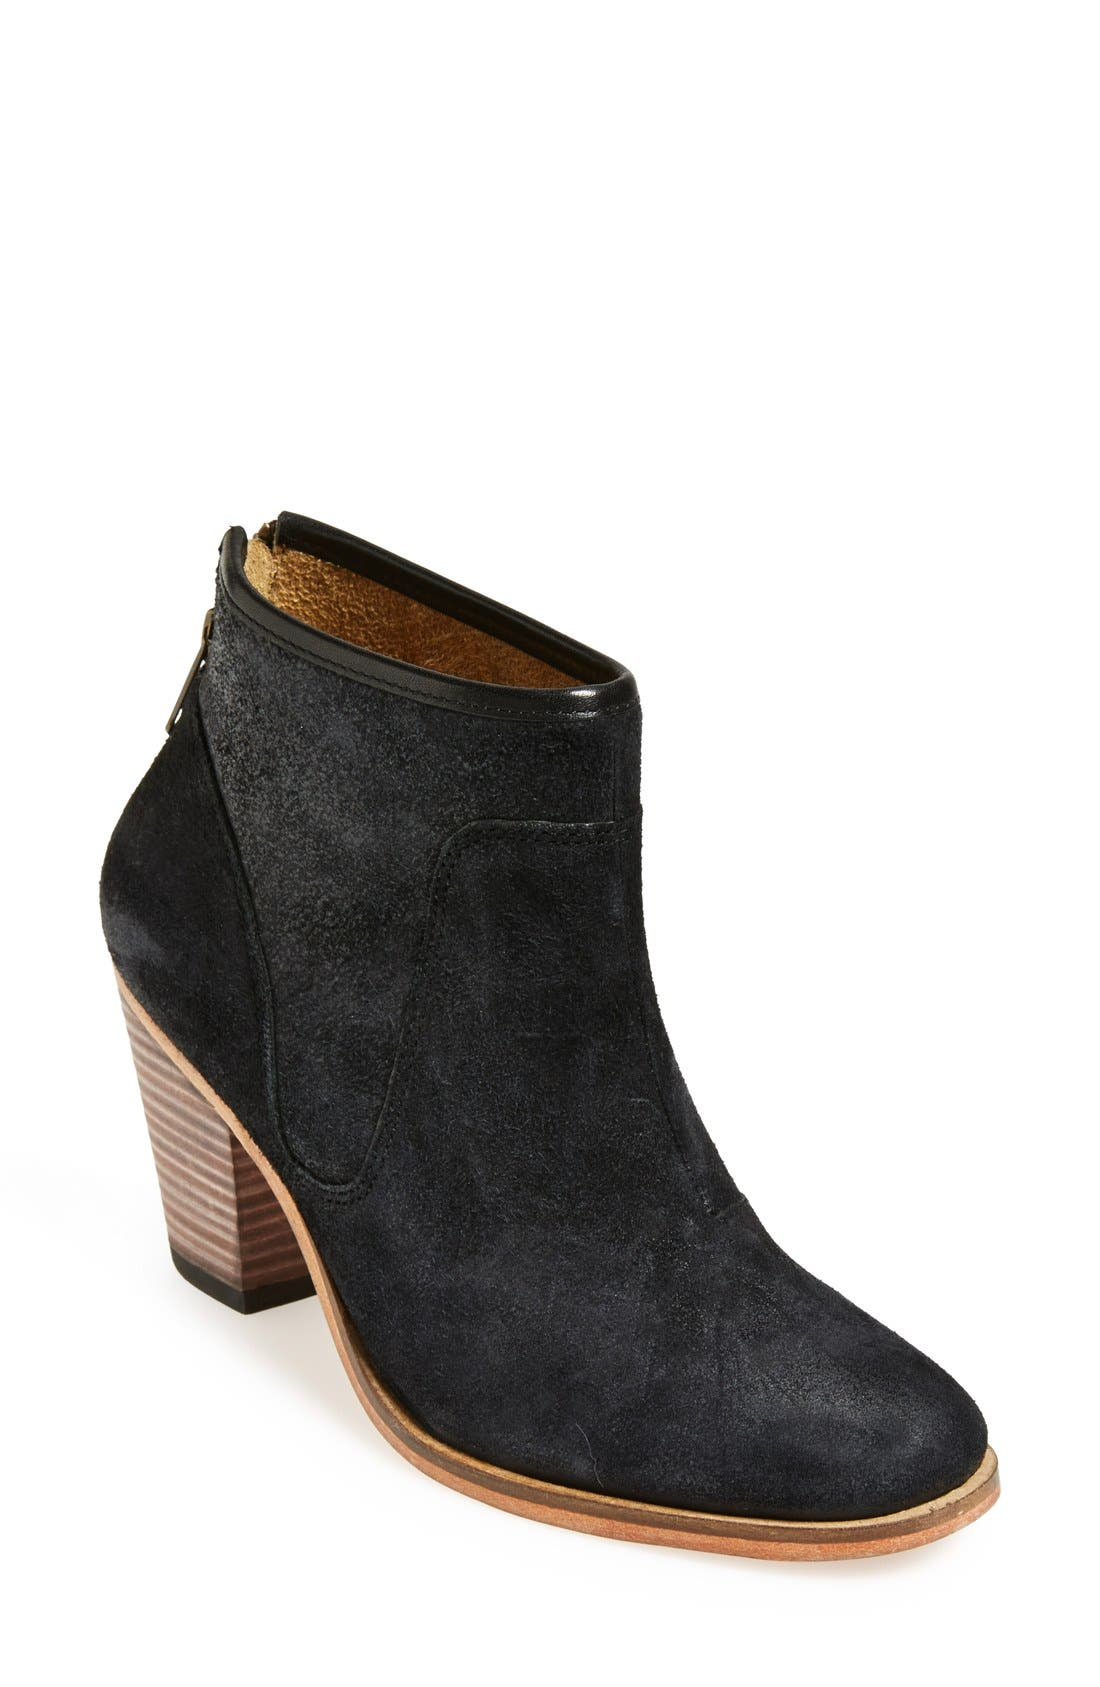 'Belgrave' Bootie,                         Main,                         color, Black Distressed